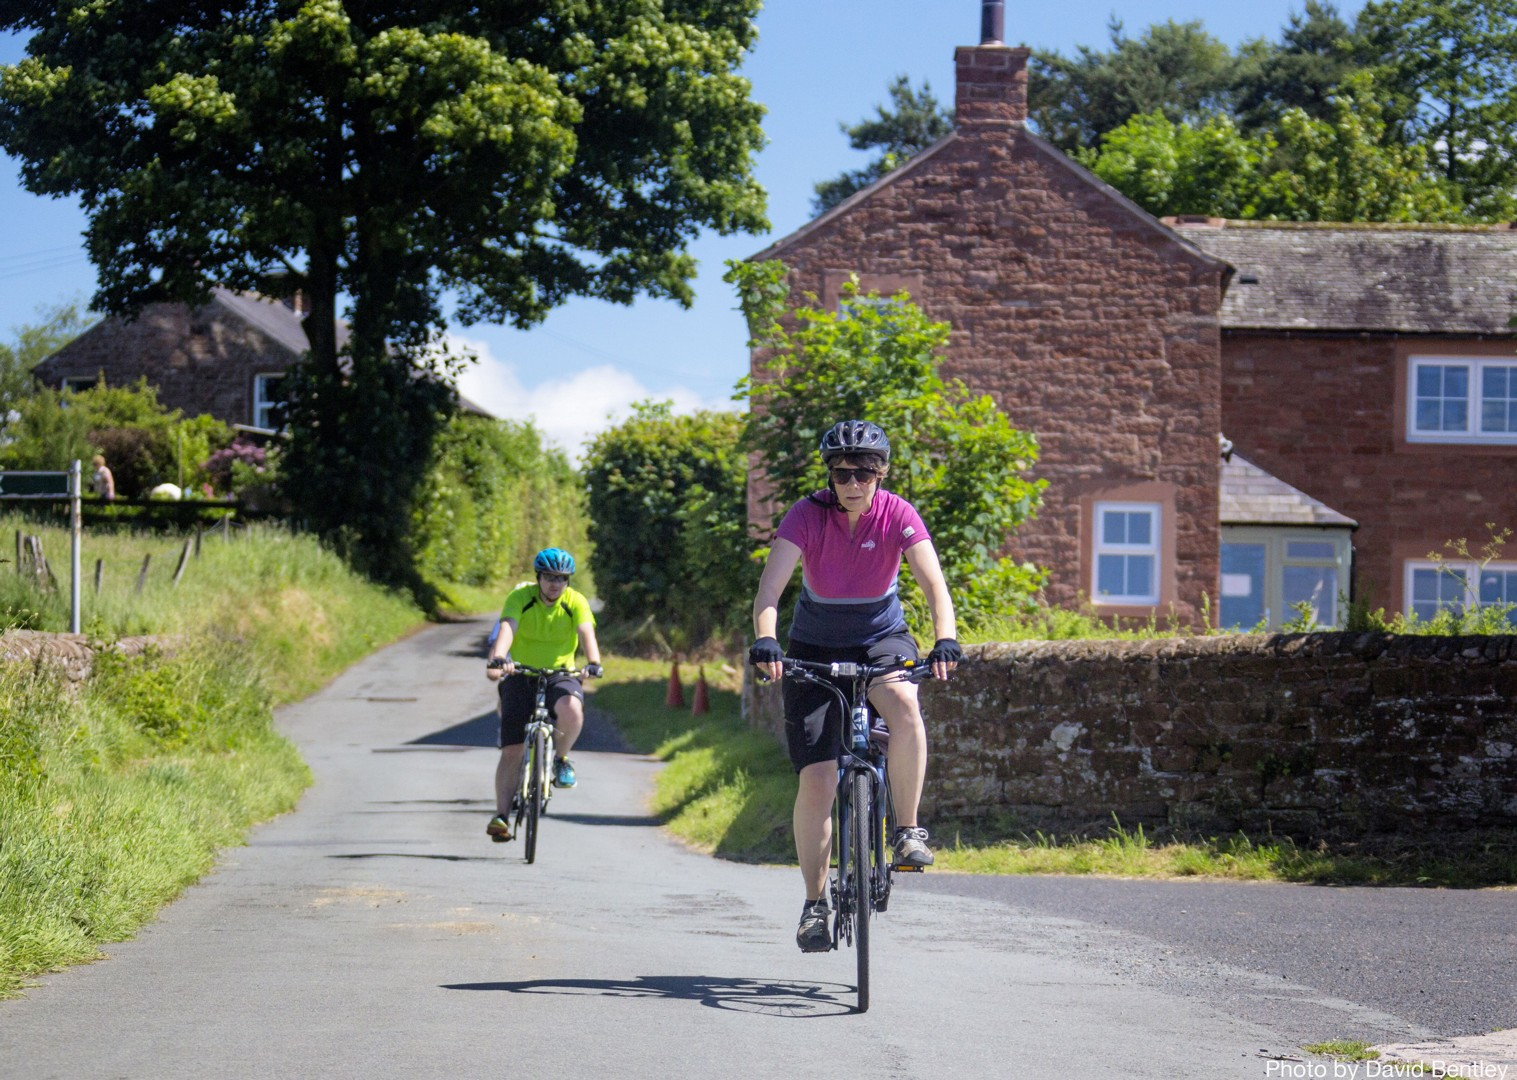 pathways-hadrians-cycleway-family-supported-cycling.jpg - UK - Hadrian's Cycleway 4 Day - Supported Family Cycling Holiday - Family Cycling